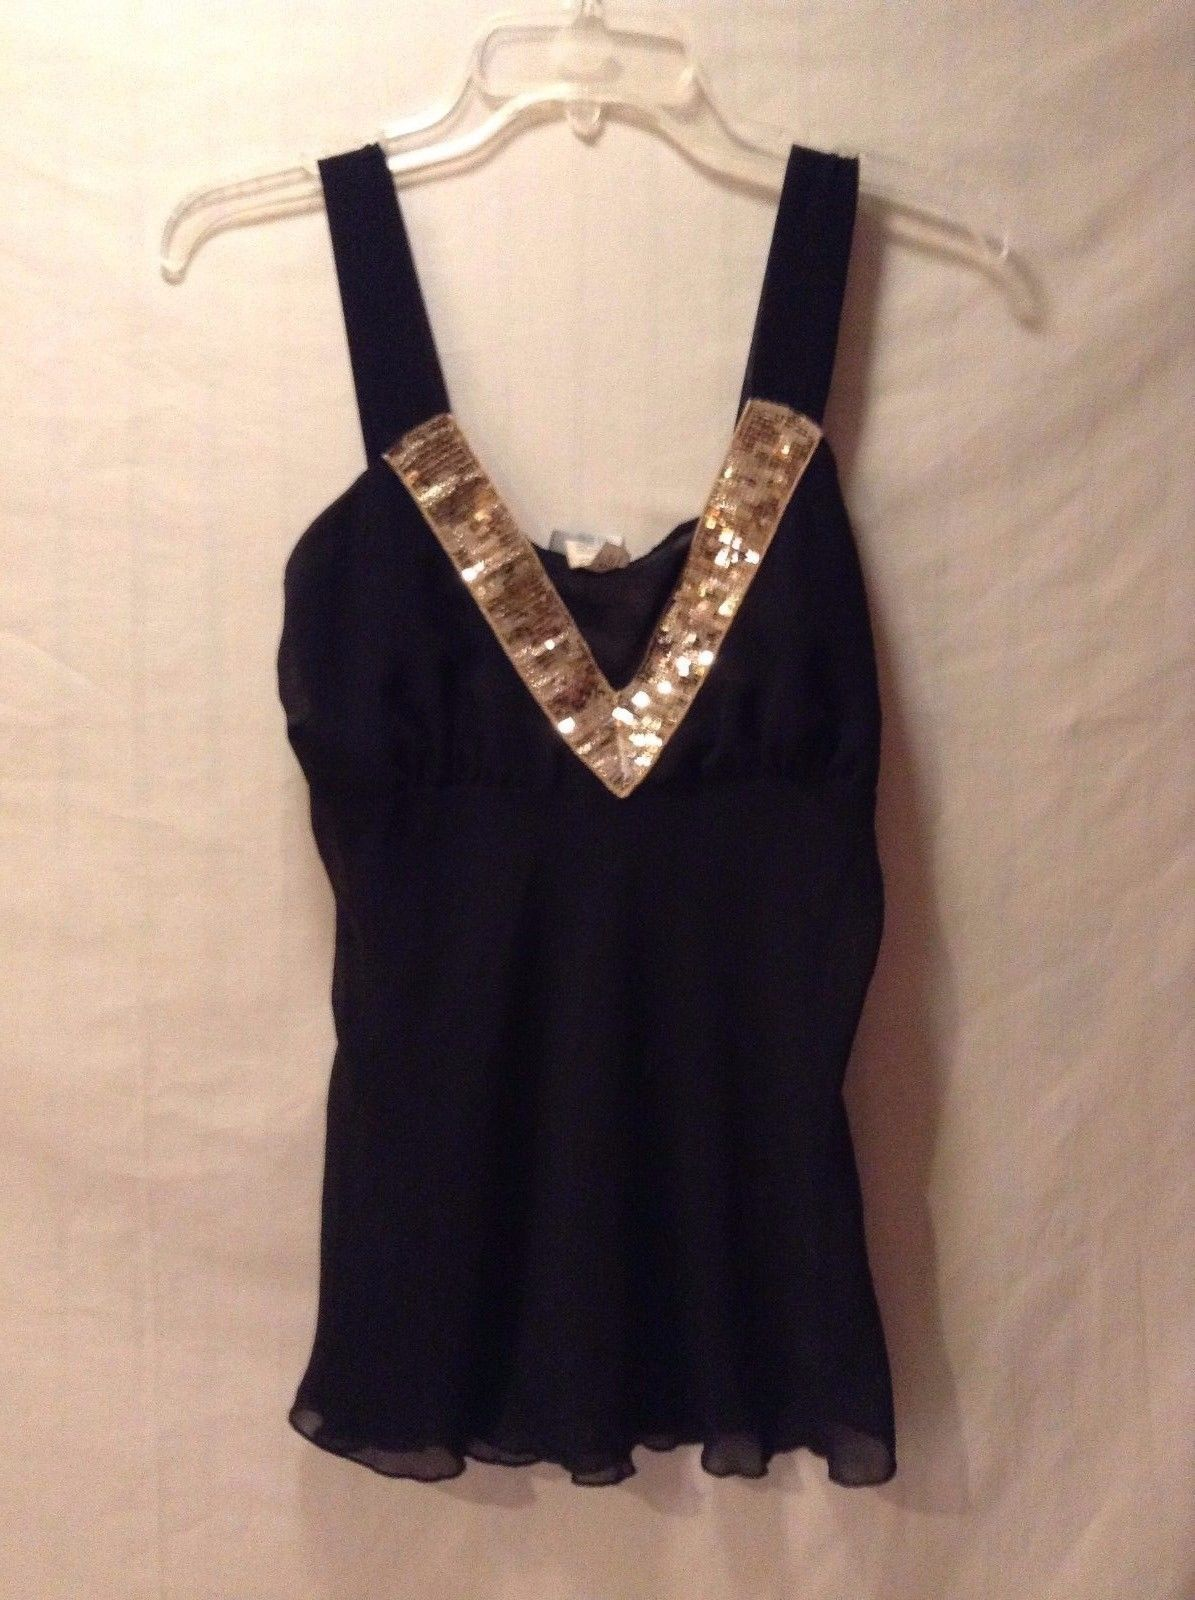 Women's Dios V-Neck Tank Top Size Medium Black with Gold Sequins